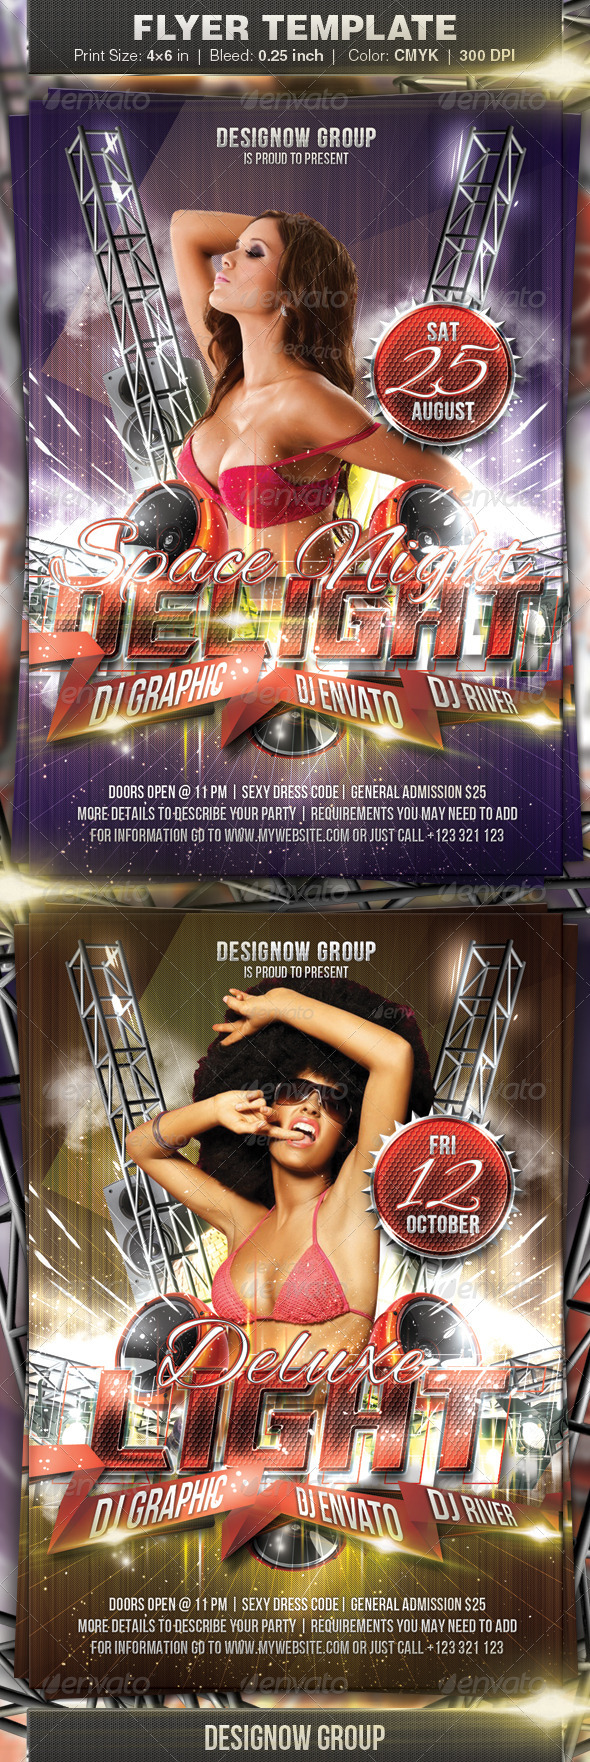 Space Night Delight Flyer - Clubs & Parties Events